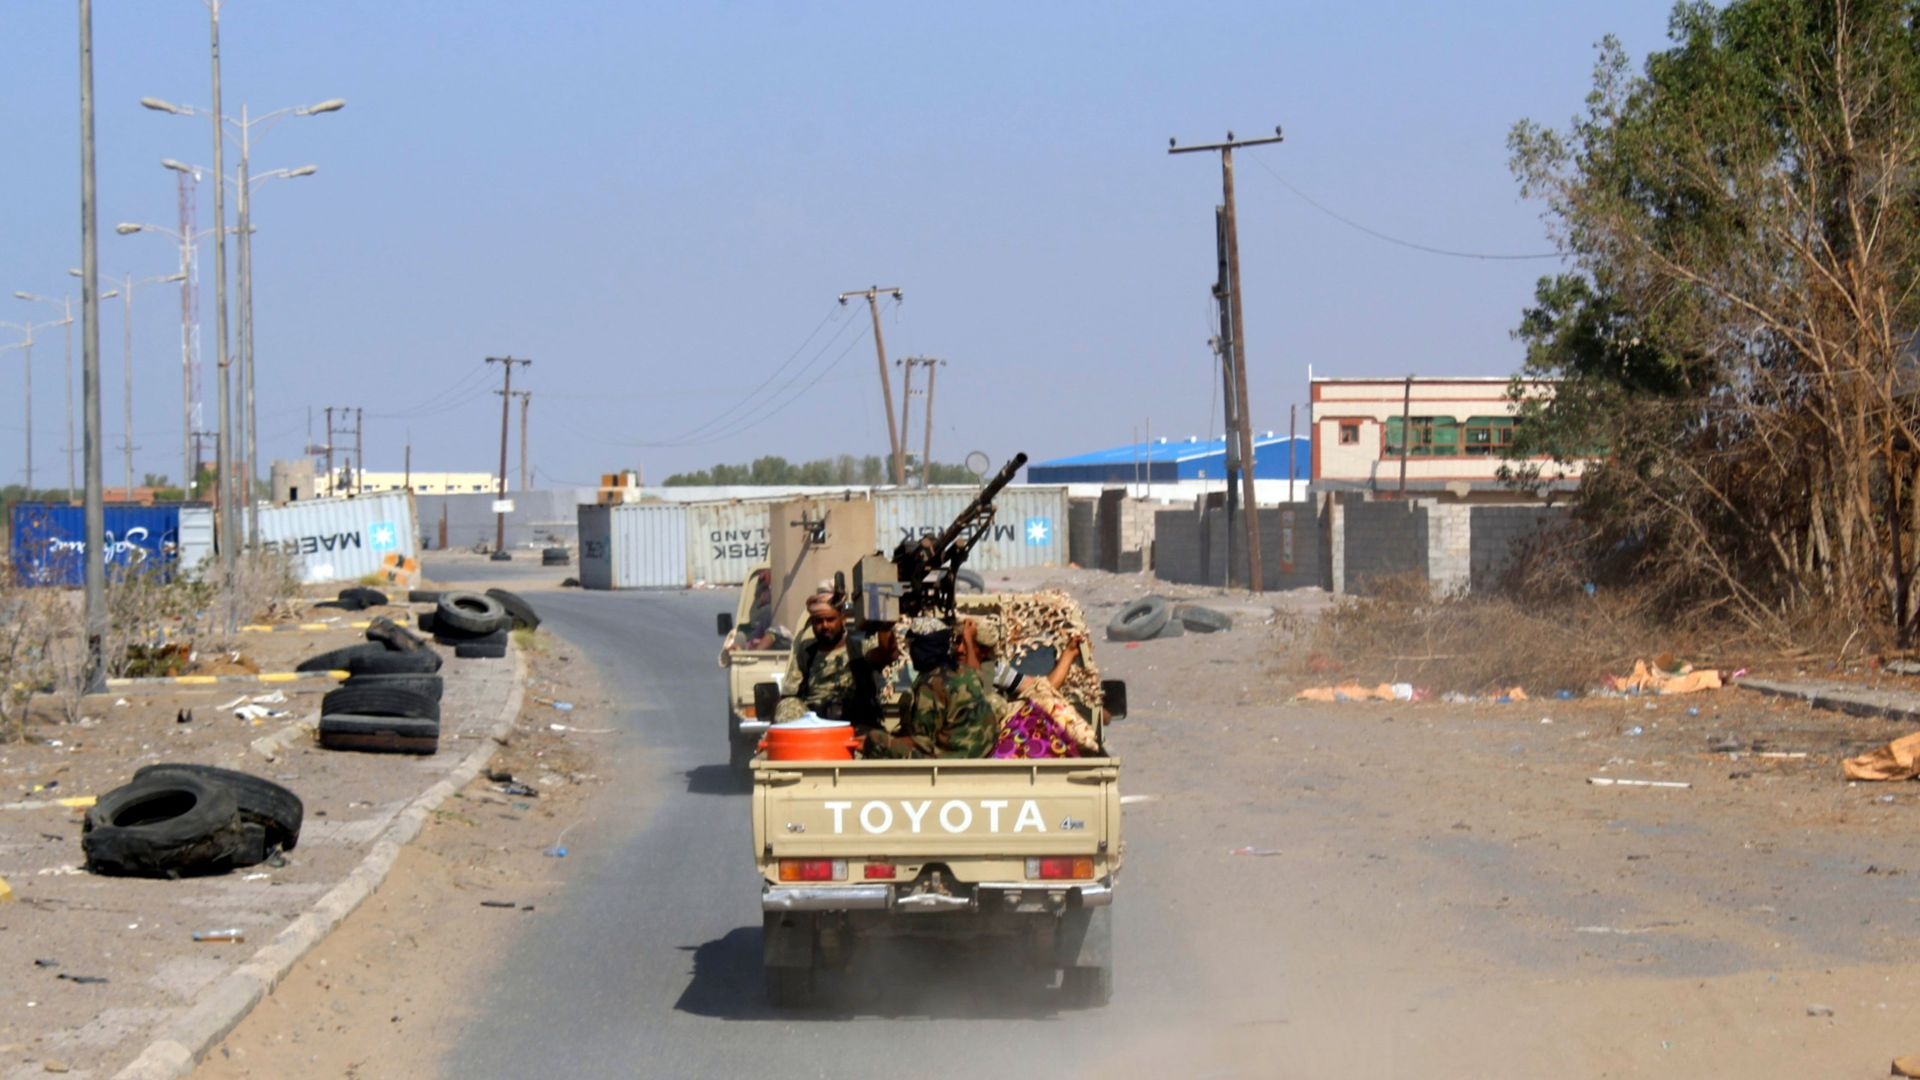 Yemeni government fighters in a truck on an empty, dusty road